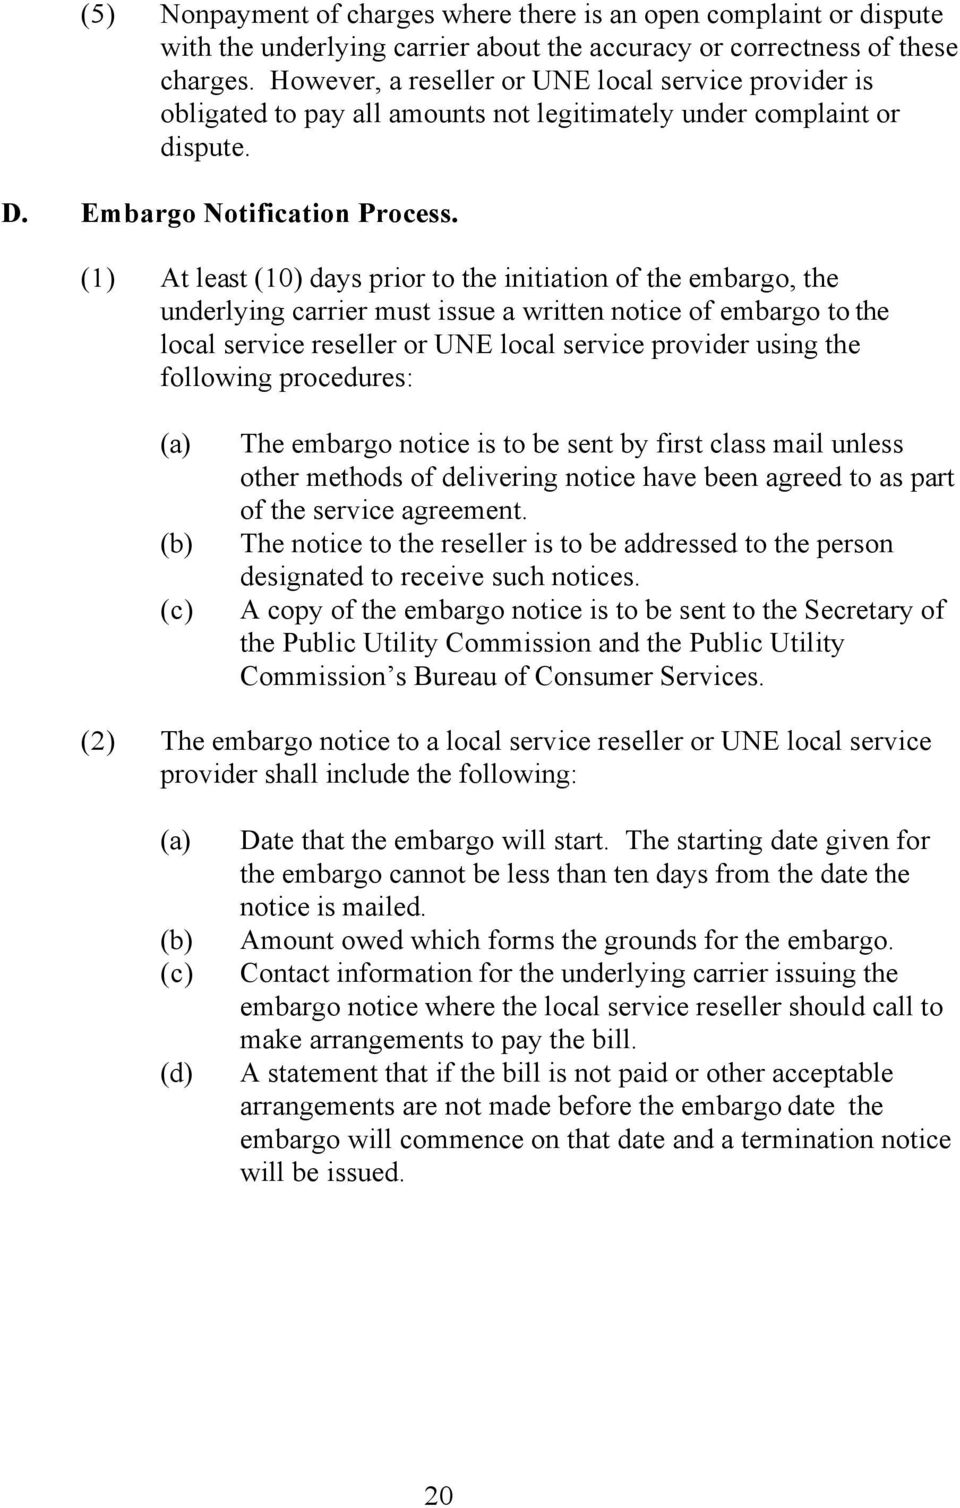 (1) At least (10) days prior to the initiation of the embargo, the underlying carrier must issue a written notice of embargo to the local service reseller or UNE local service provider using the